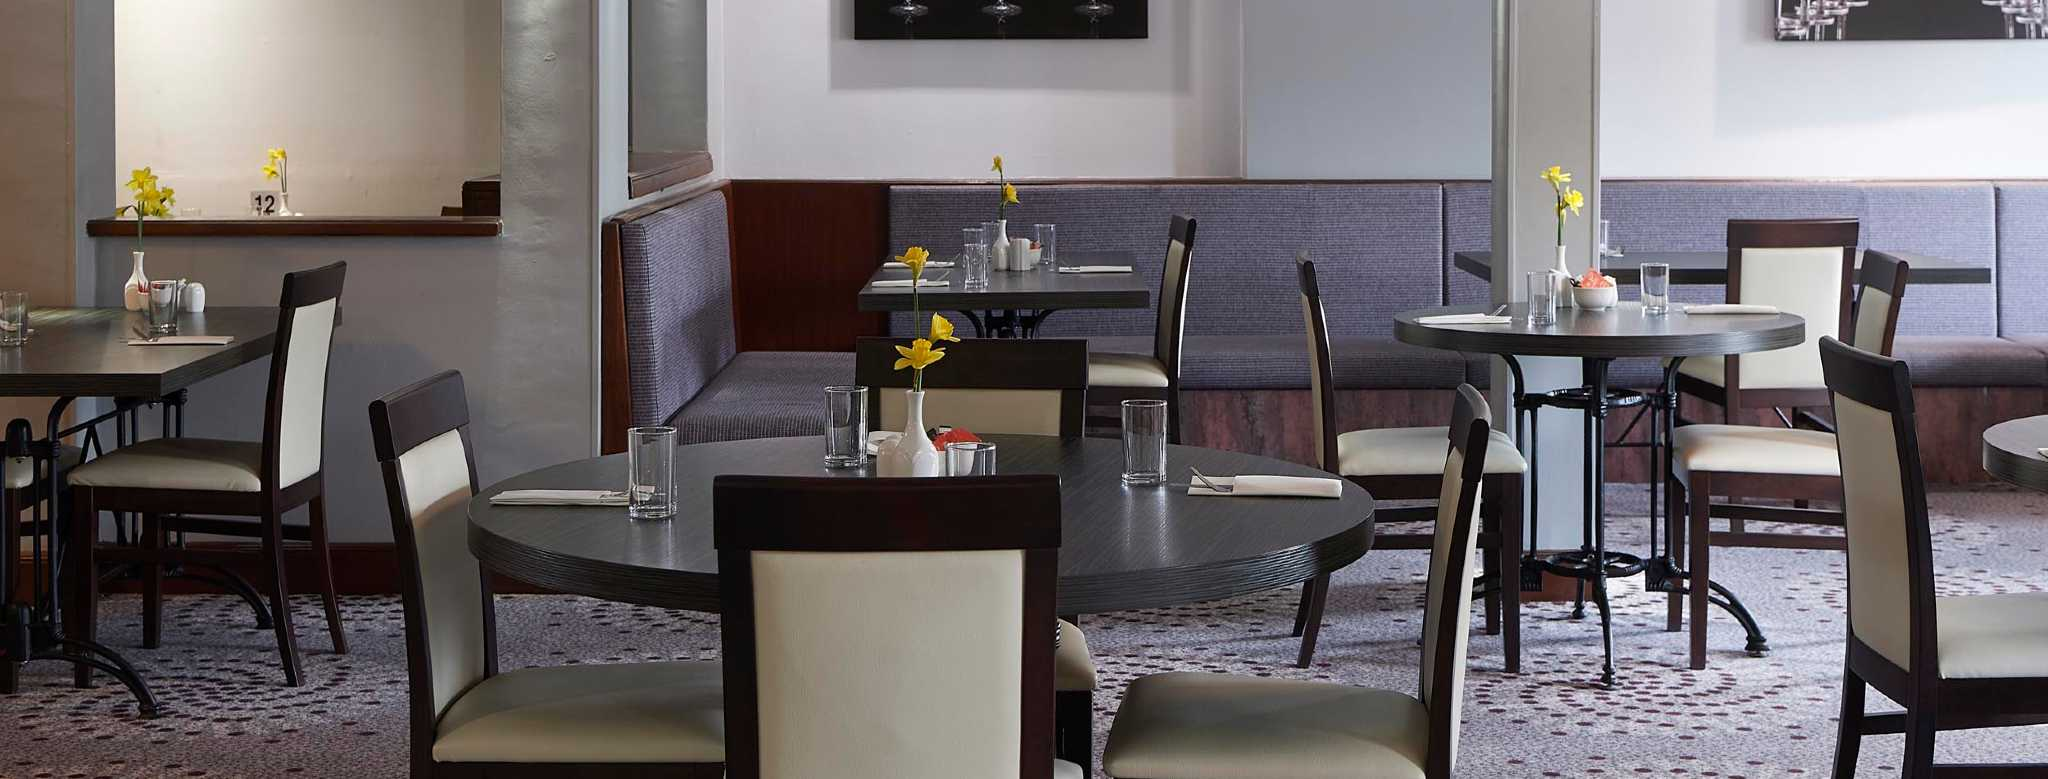 Dining Room 3 header.jpg